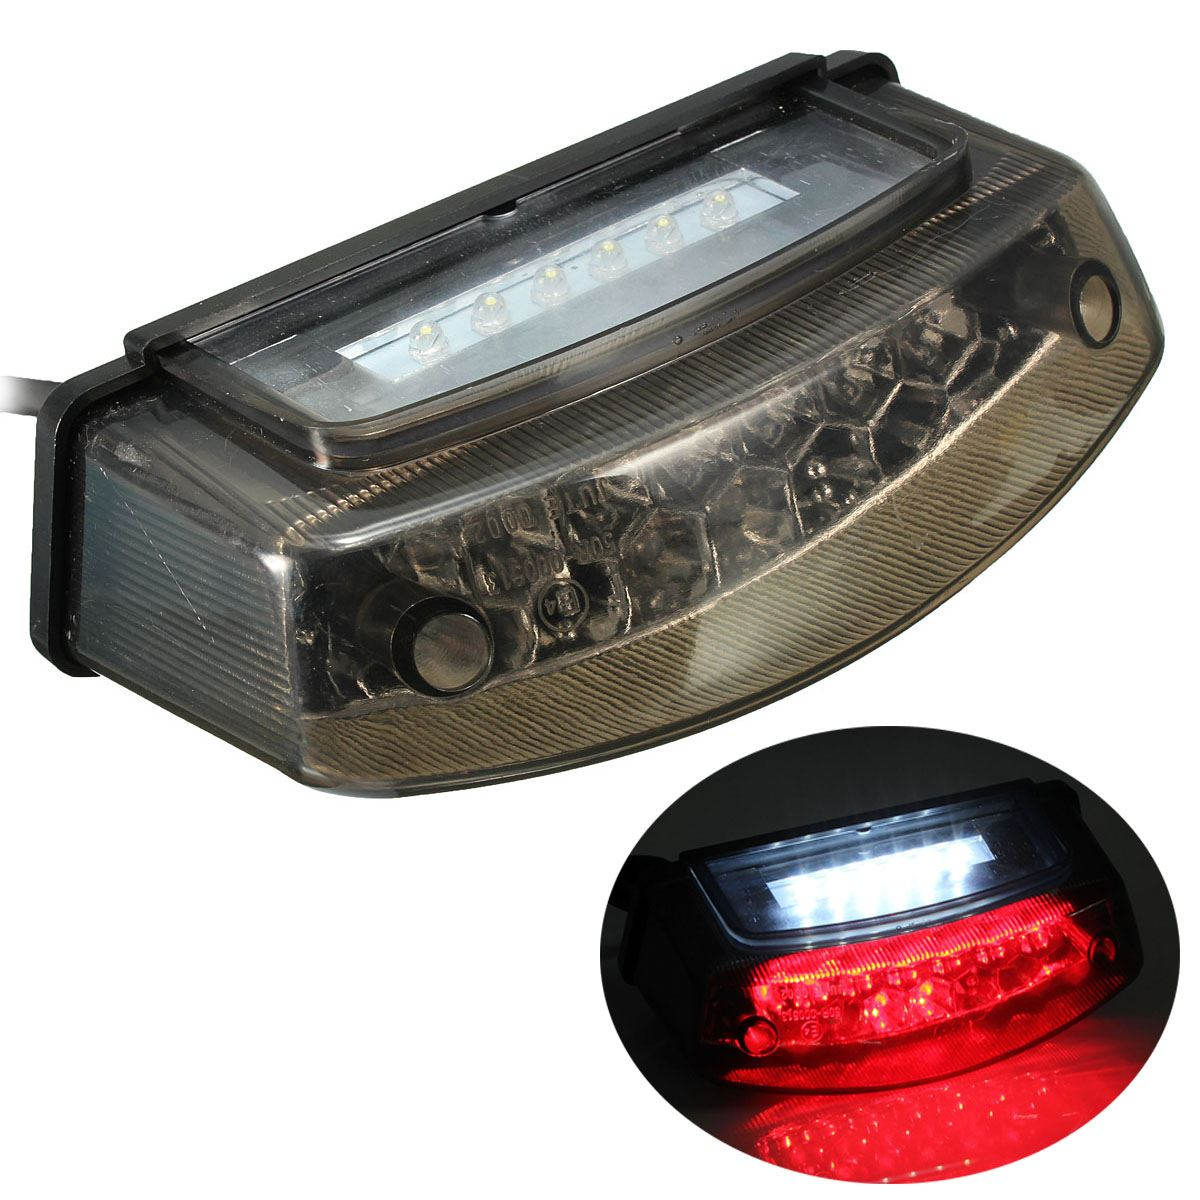 12V LED Universal Motorcycle Tail Brake Light License Plate Lamp Rear Stop Lamp For Harley-Davidson For Honda For Suzuki